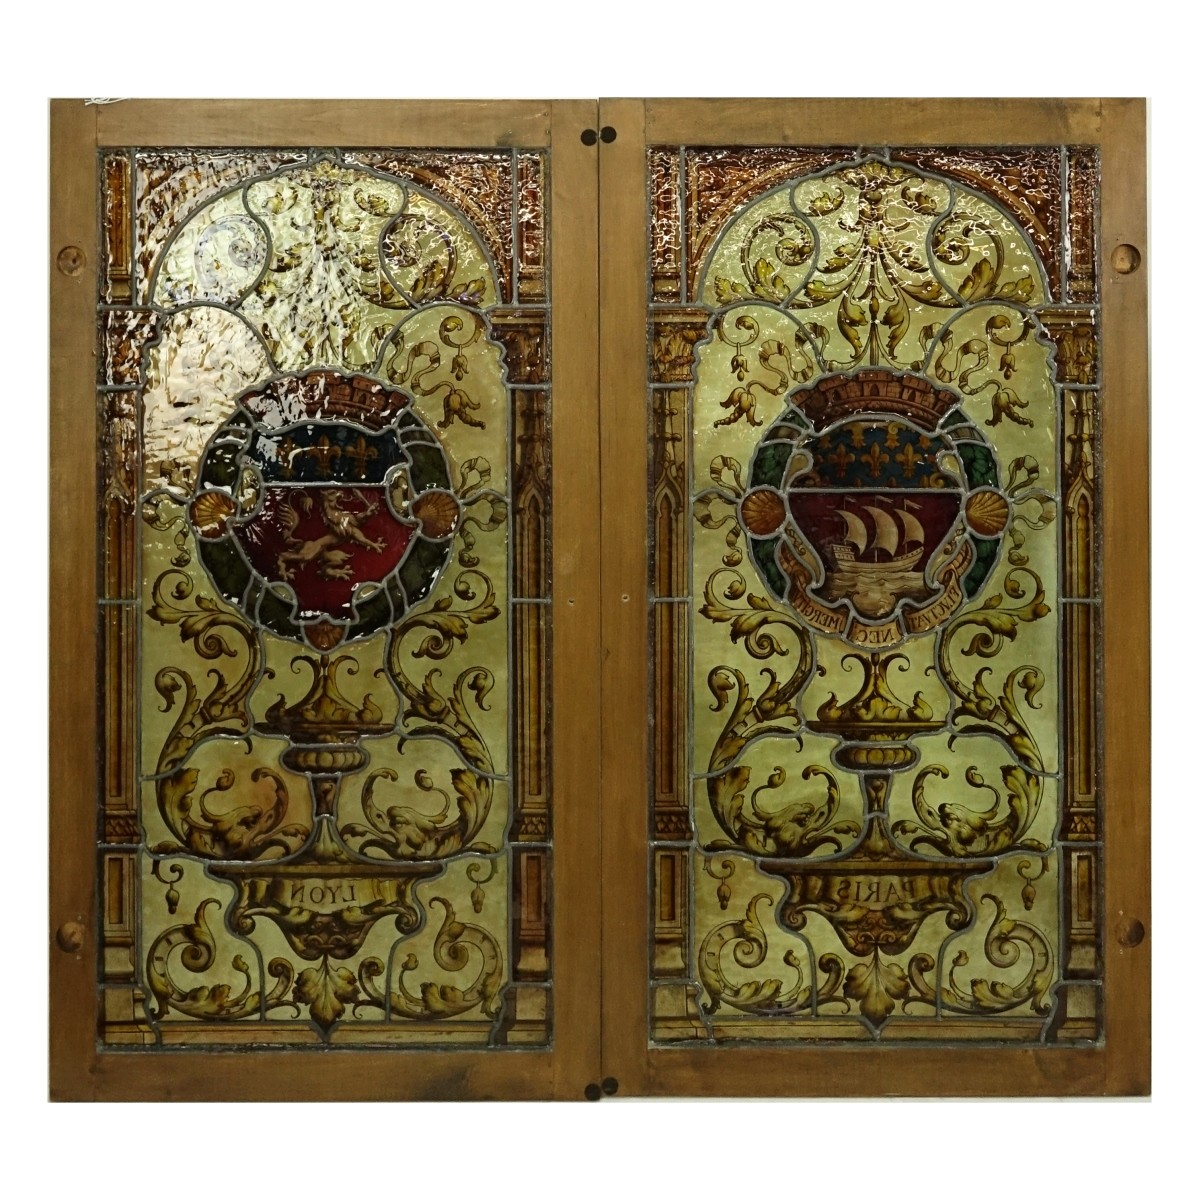 Pair of Vintage Stained Glass Window Panels